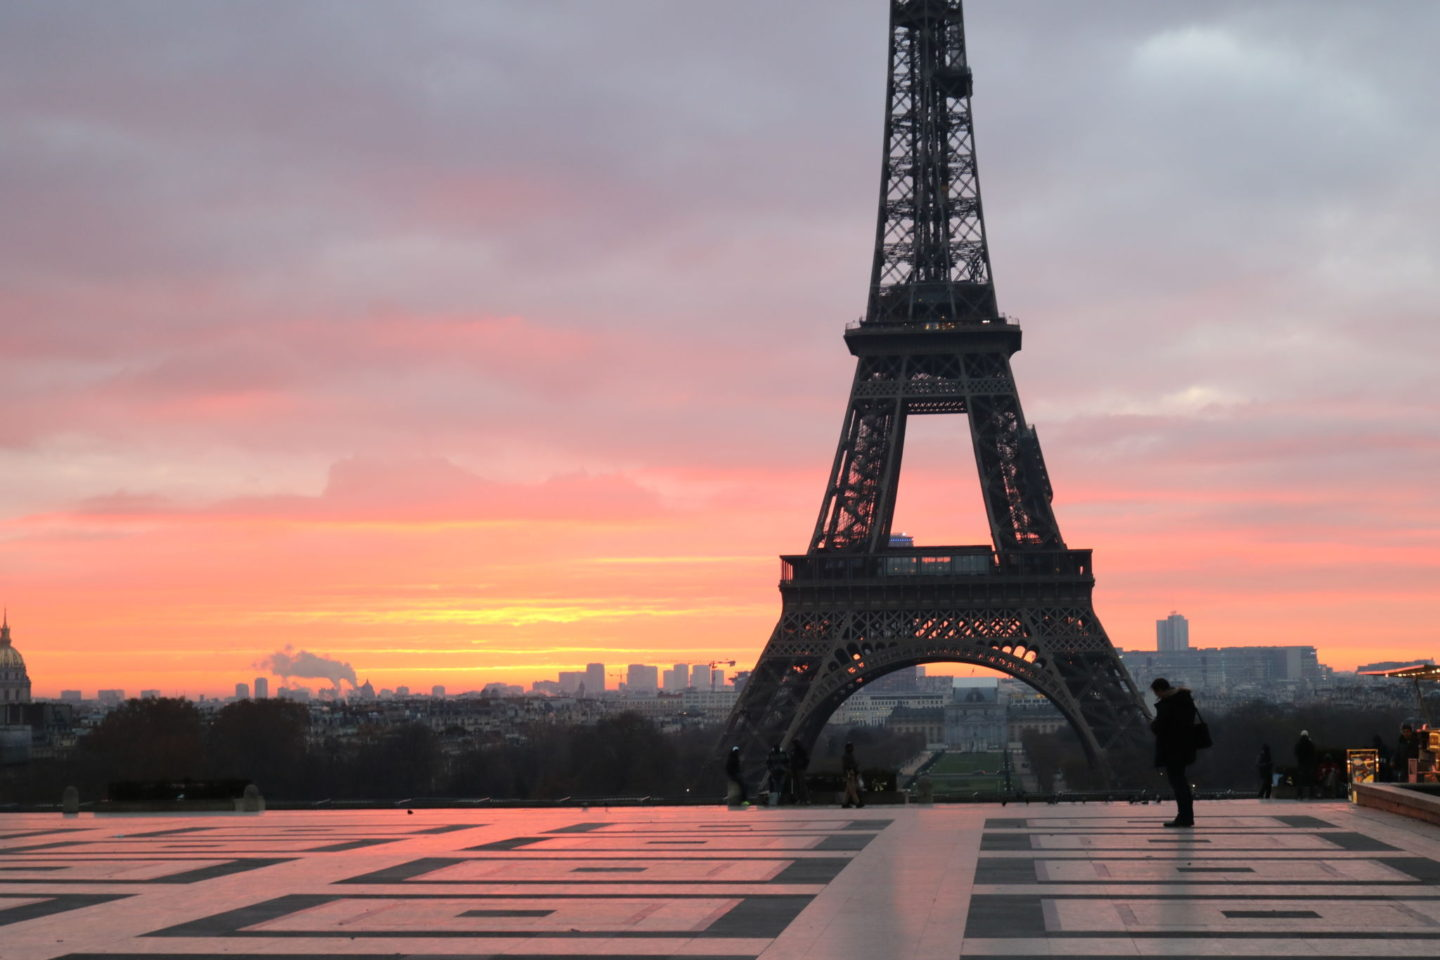 How To Make The Most Of Your Trip To Paris Without Spending Too Much